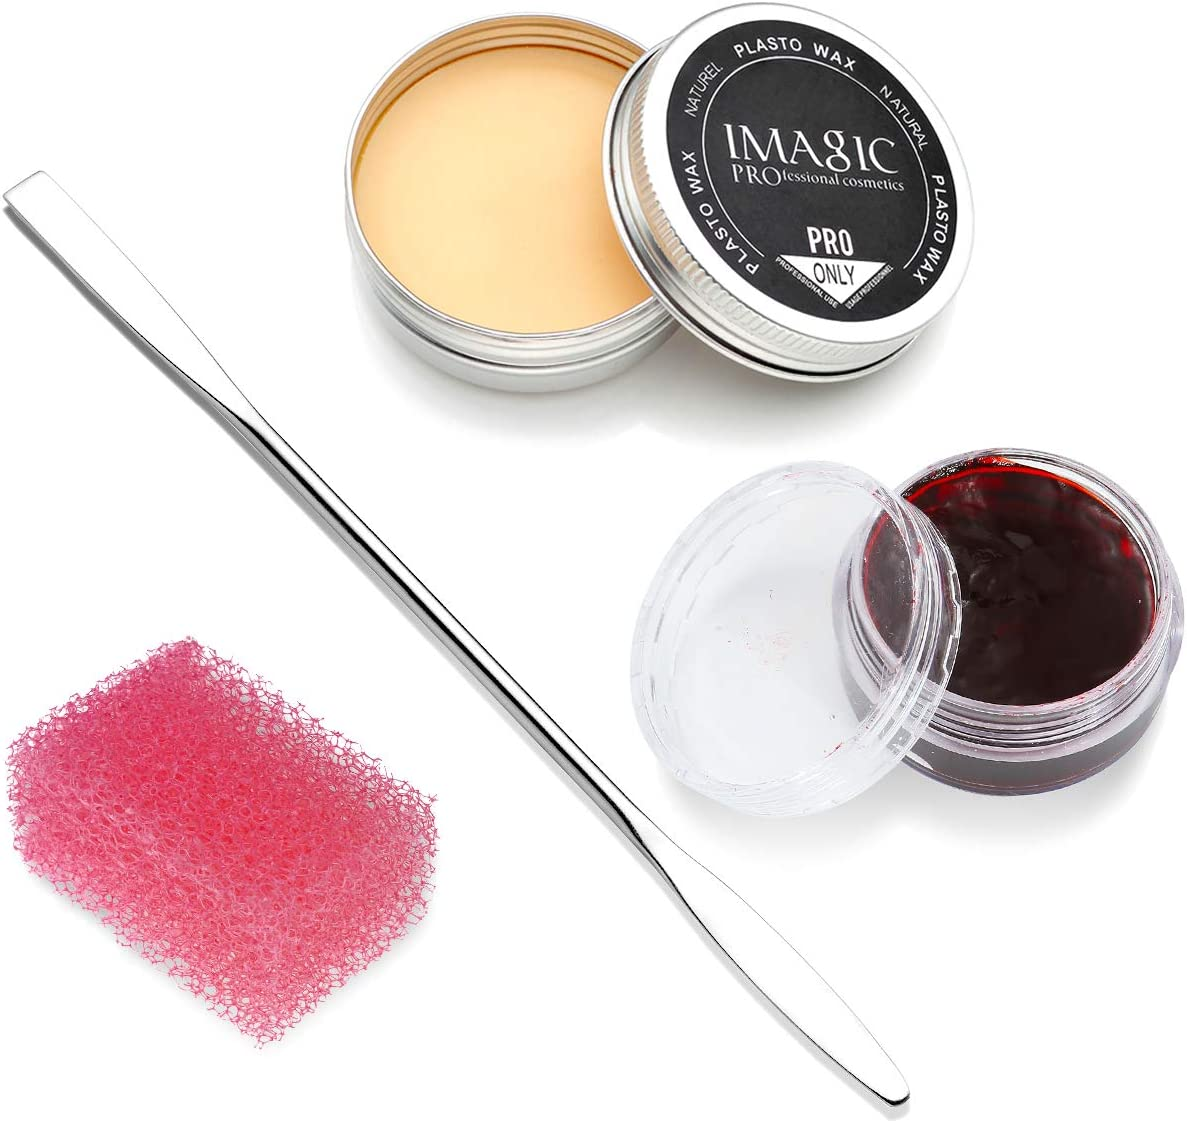 CCbeauty Special Effects Stage Makeup Wax (1.16 Oz) Fake Wound Moulding Scars Kit with Spatula,Scab Blood(0.63Oz) + Pink Stipple Sponge